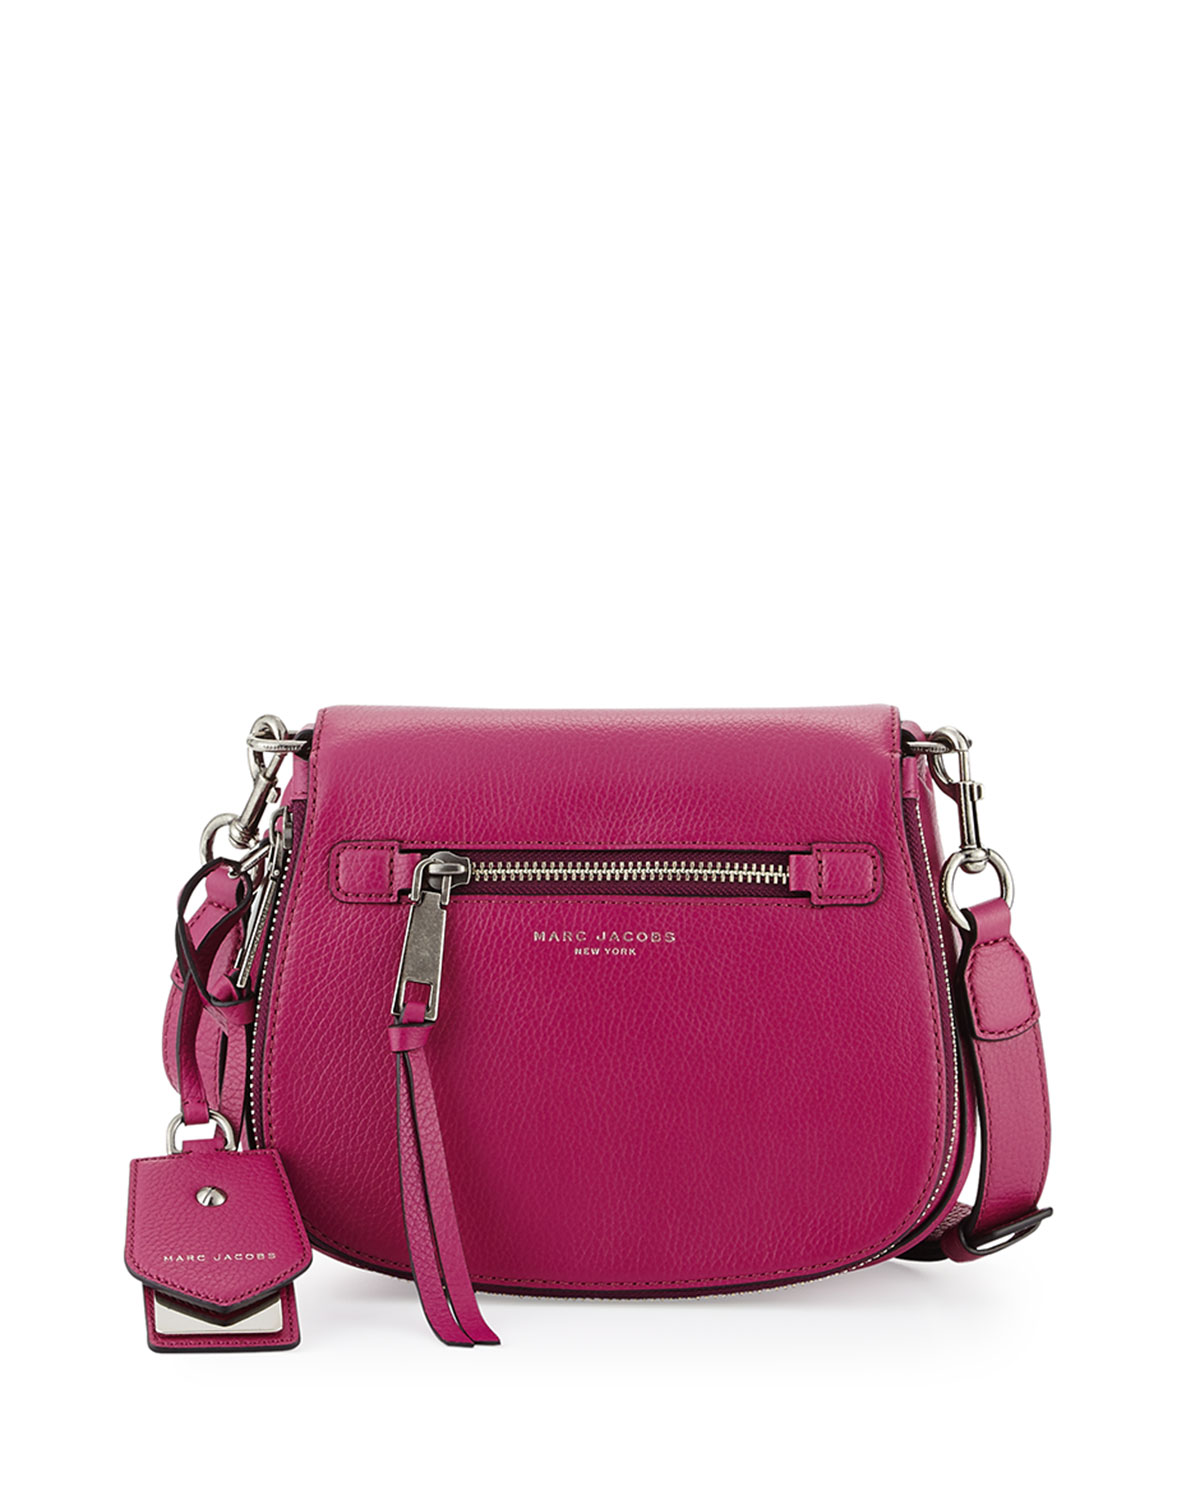 def961e4bc9743 Marc Jacobs Recruit Small Leather Saddle Bag | Neiman Marcus